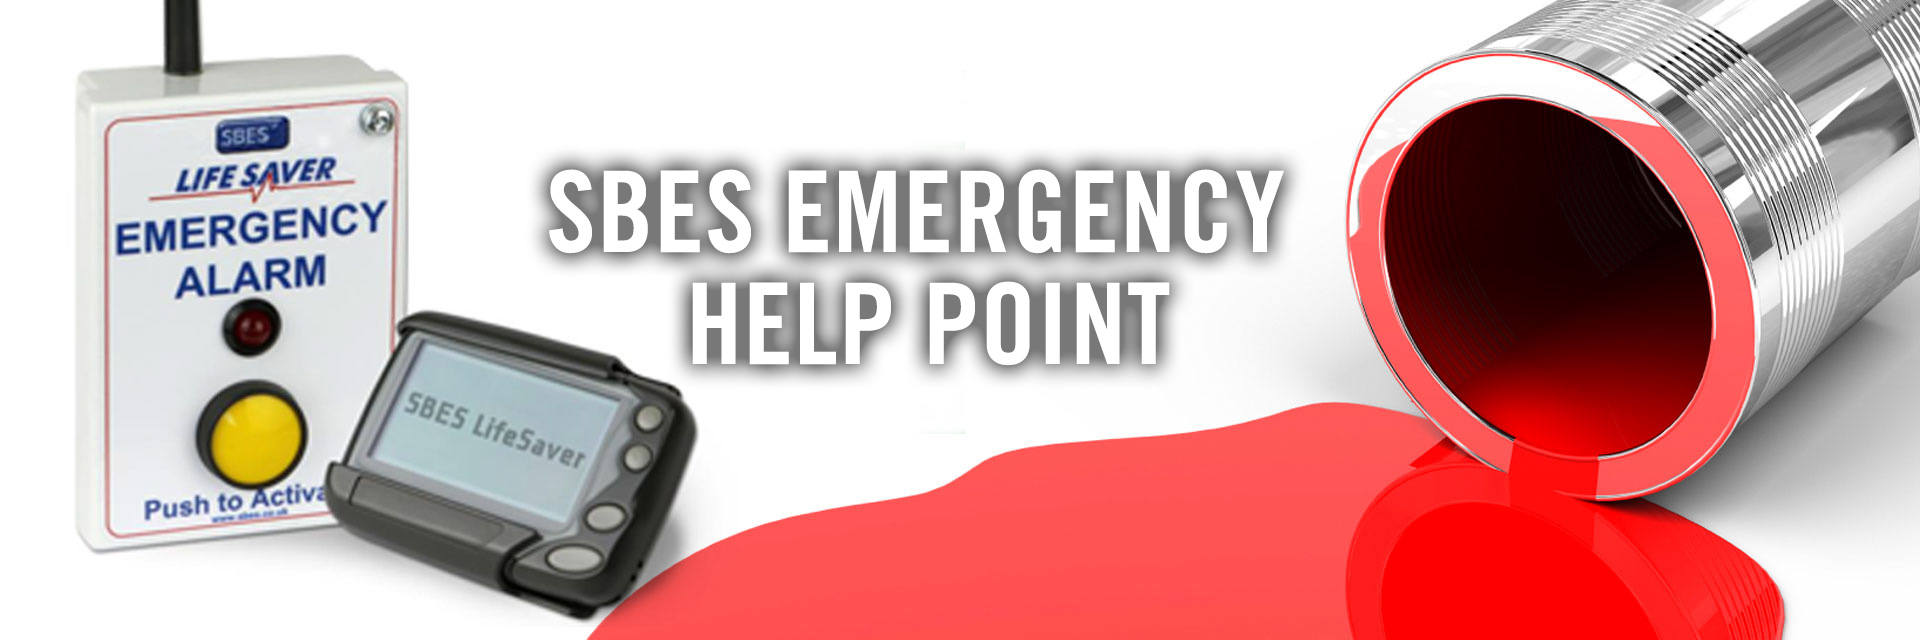 SBES Emergency Help Point